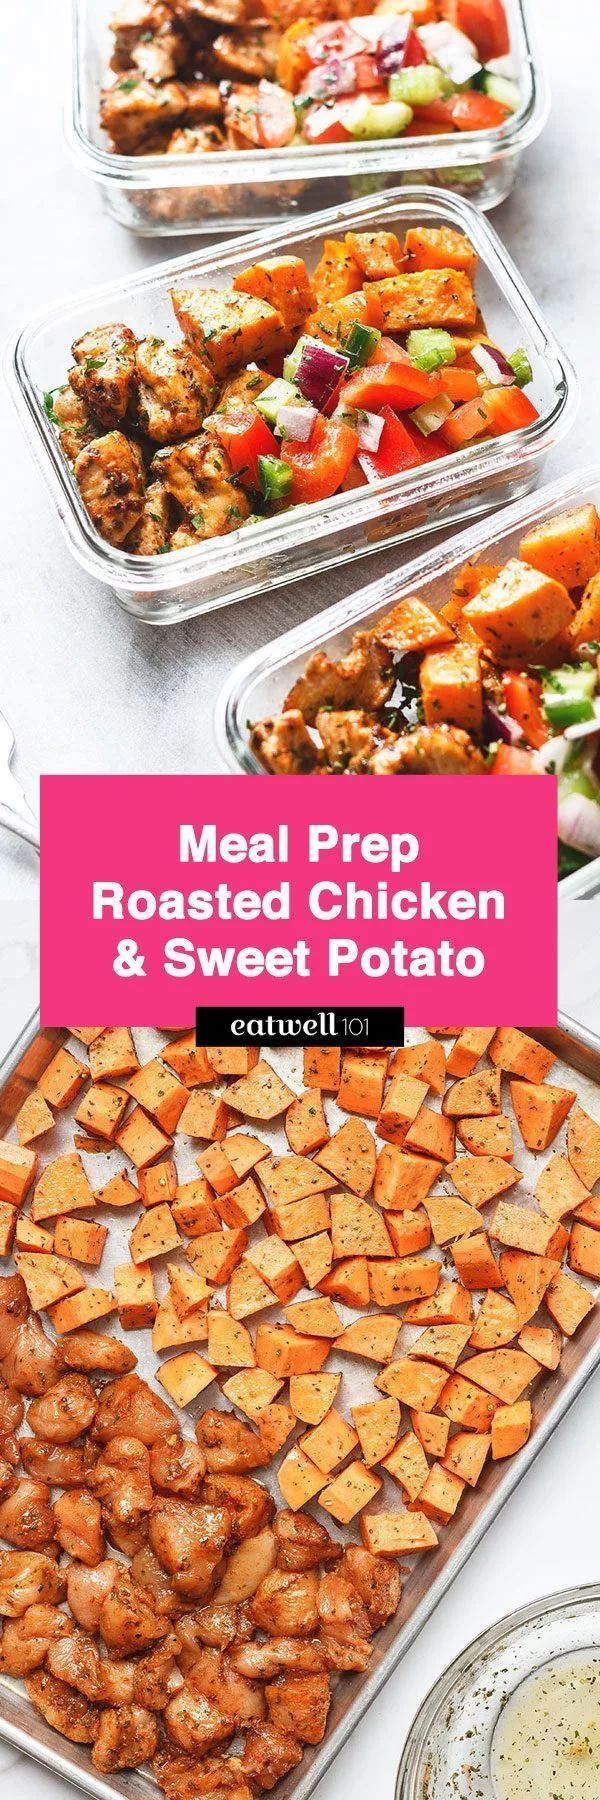 Roasted Chicken and Sweet Potato Meal Prep recipe Seasoned with olive oil and c Roasted Chicken and Sweet Potato Meal Prep recipe Seasoned with olive oil and cajun spices...